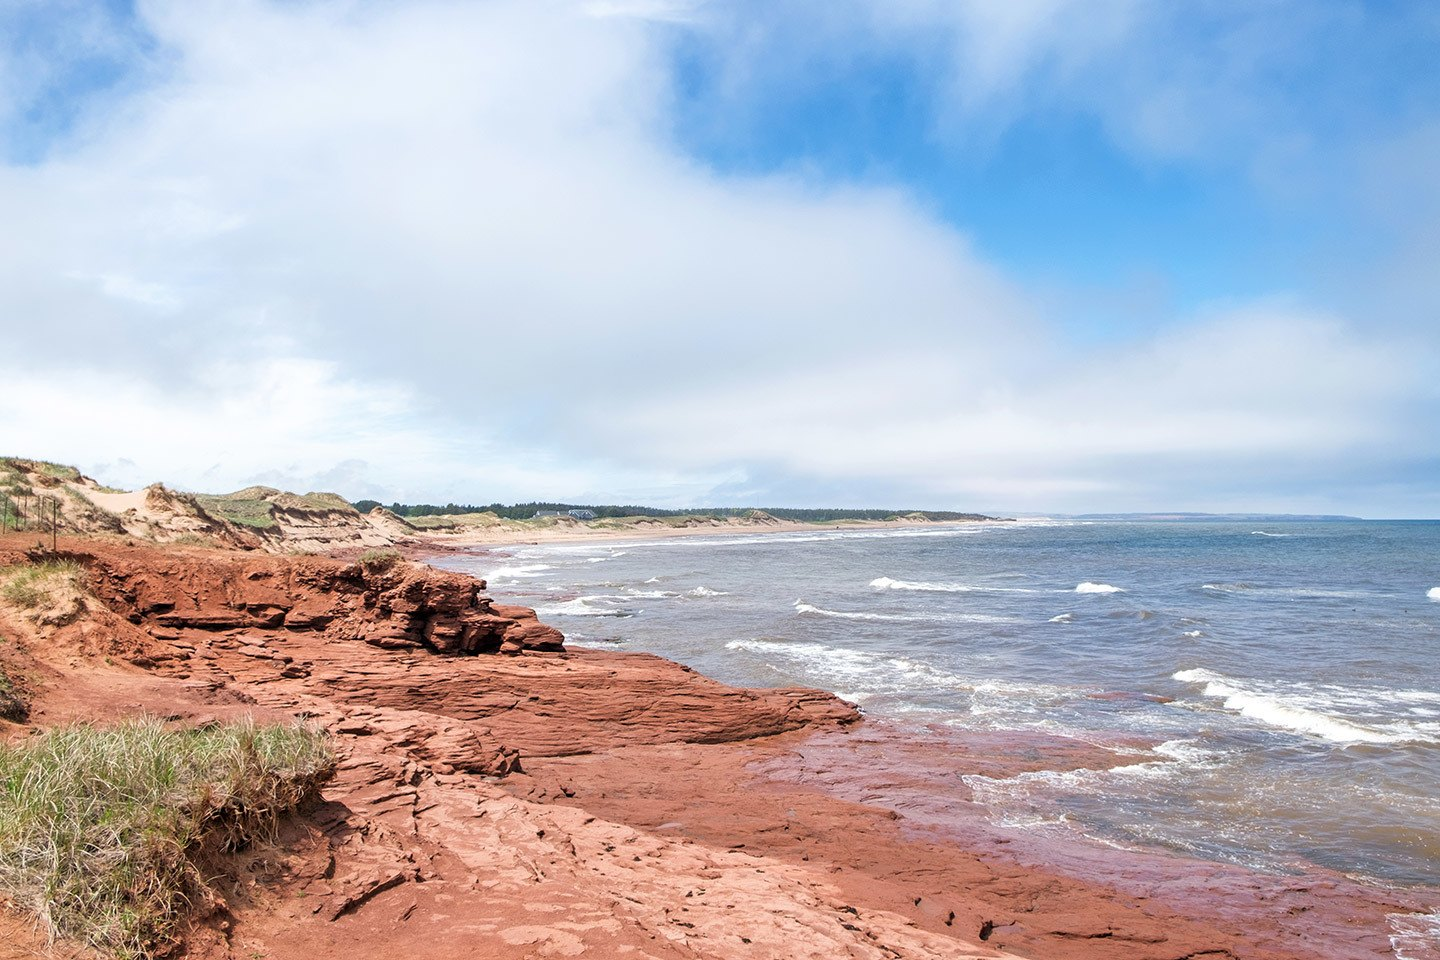 Red sandstone beaches in Prince Edward Island, Canada